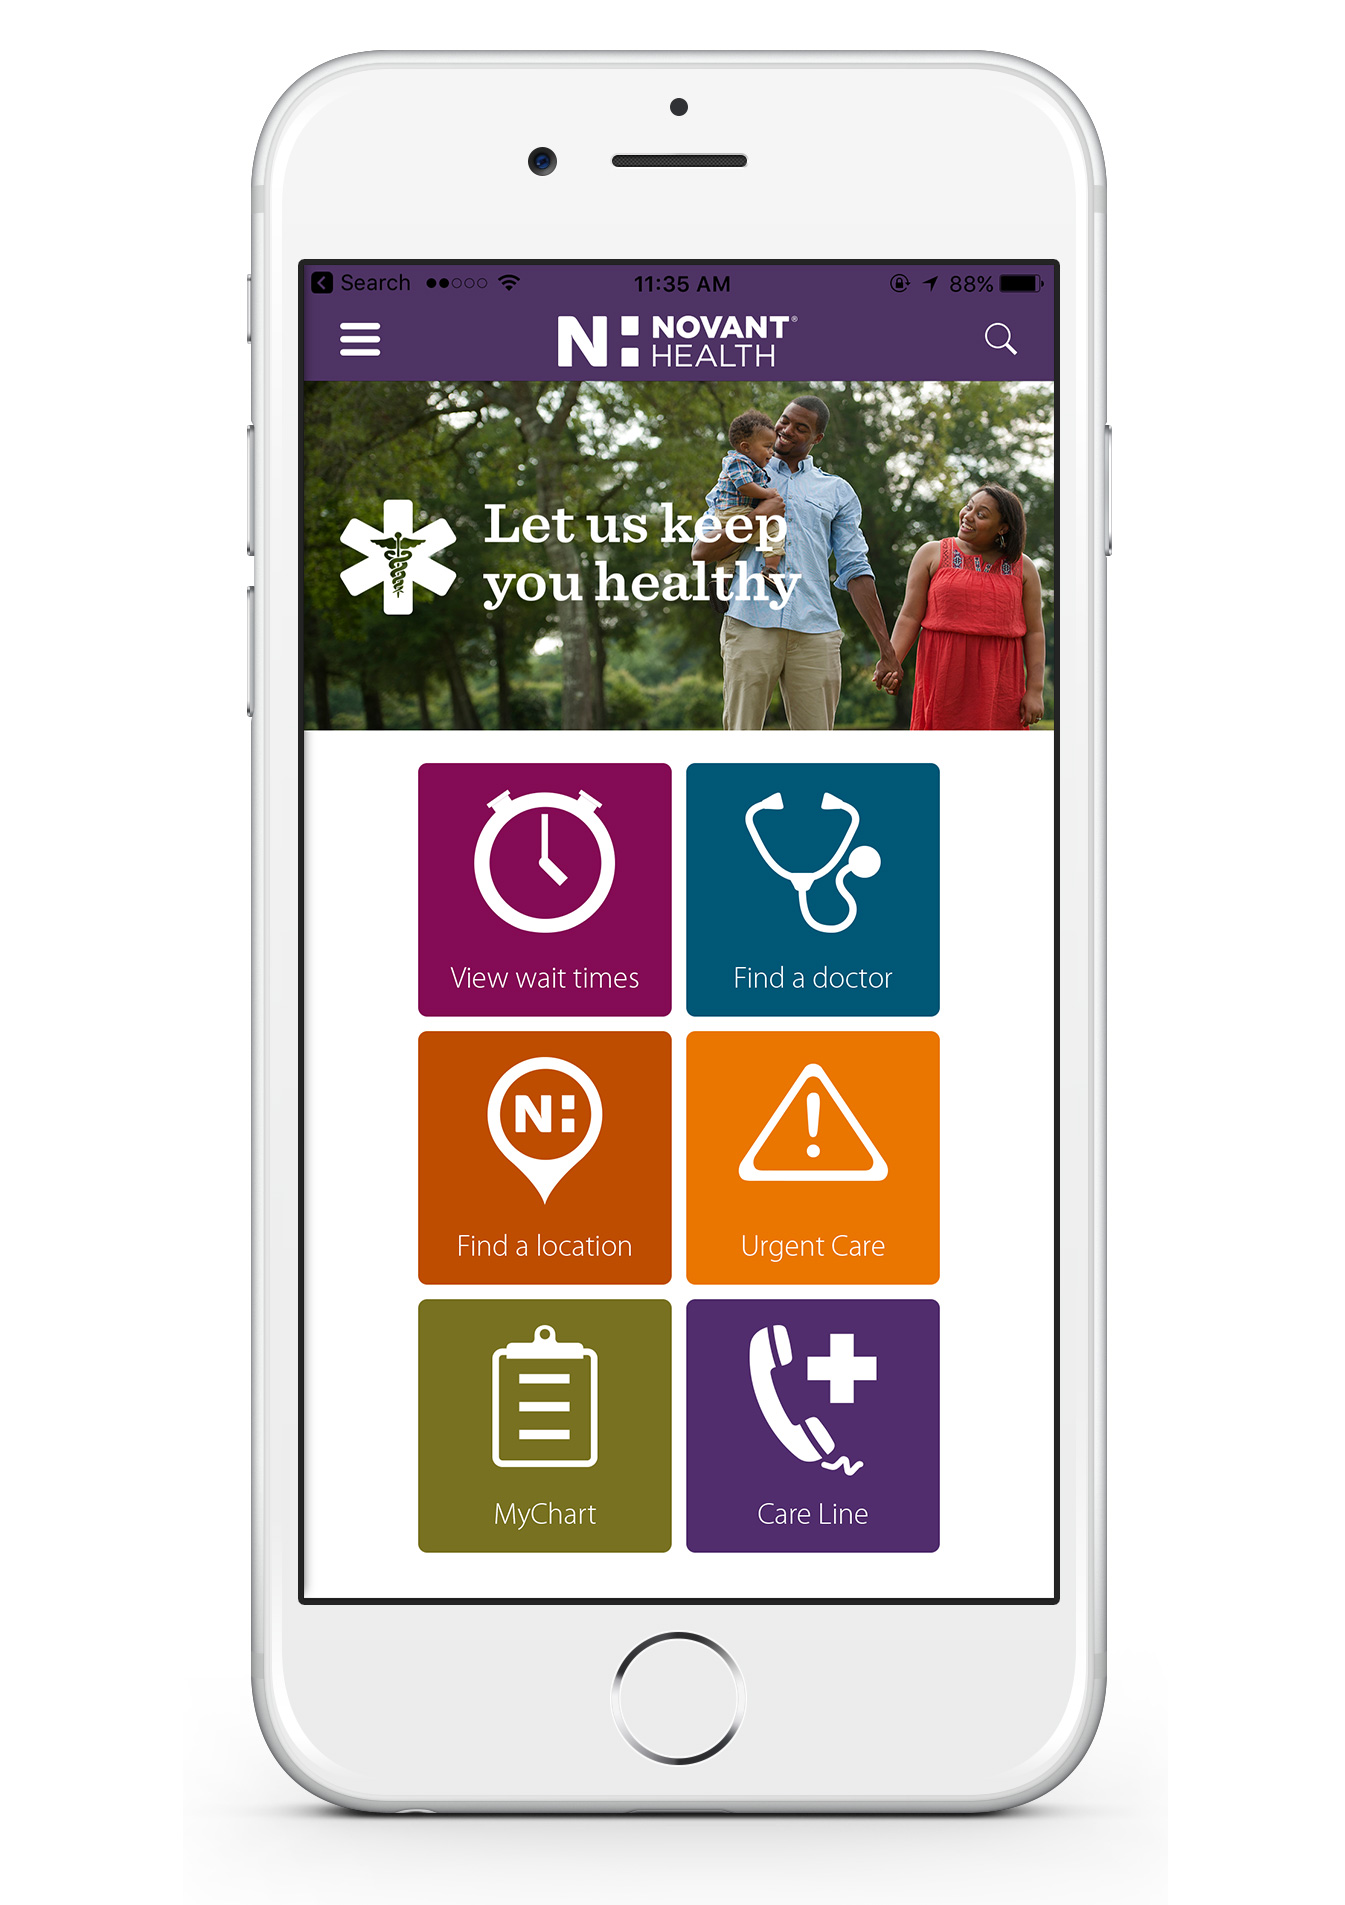 Cell phone image showing screen of Novant Health app